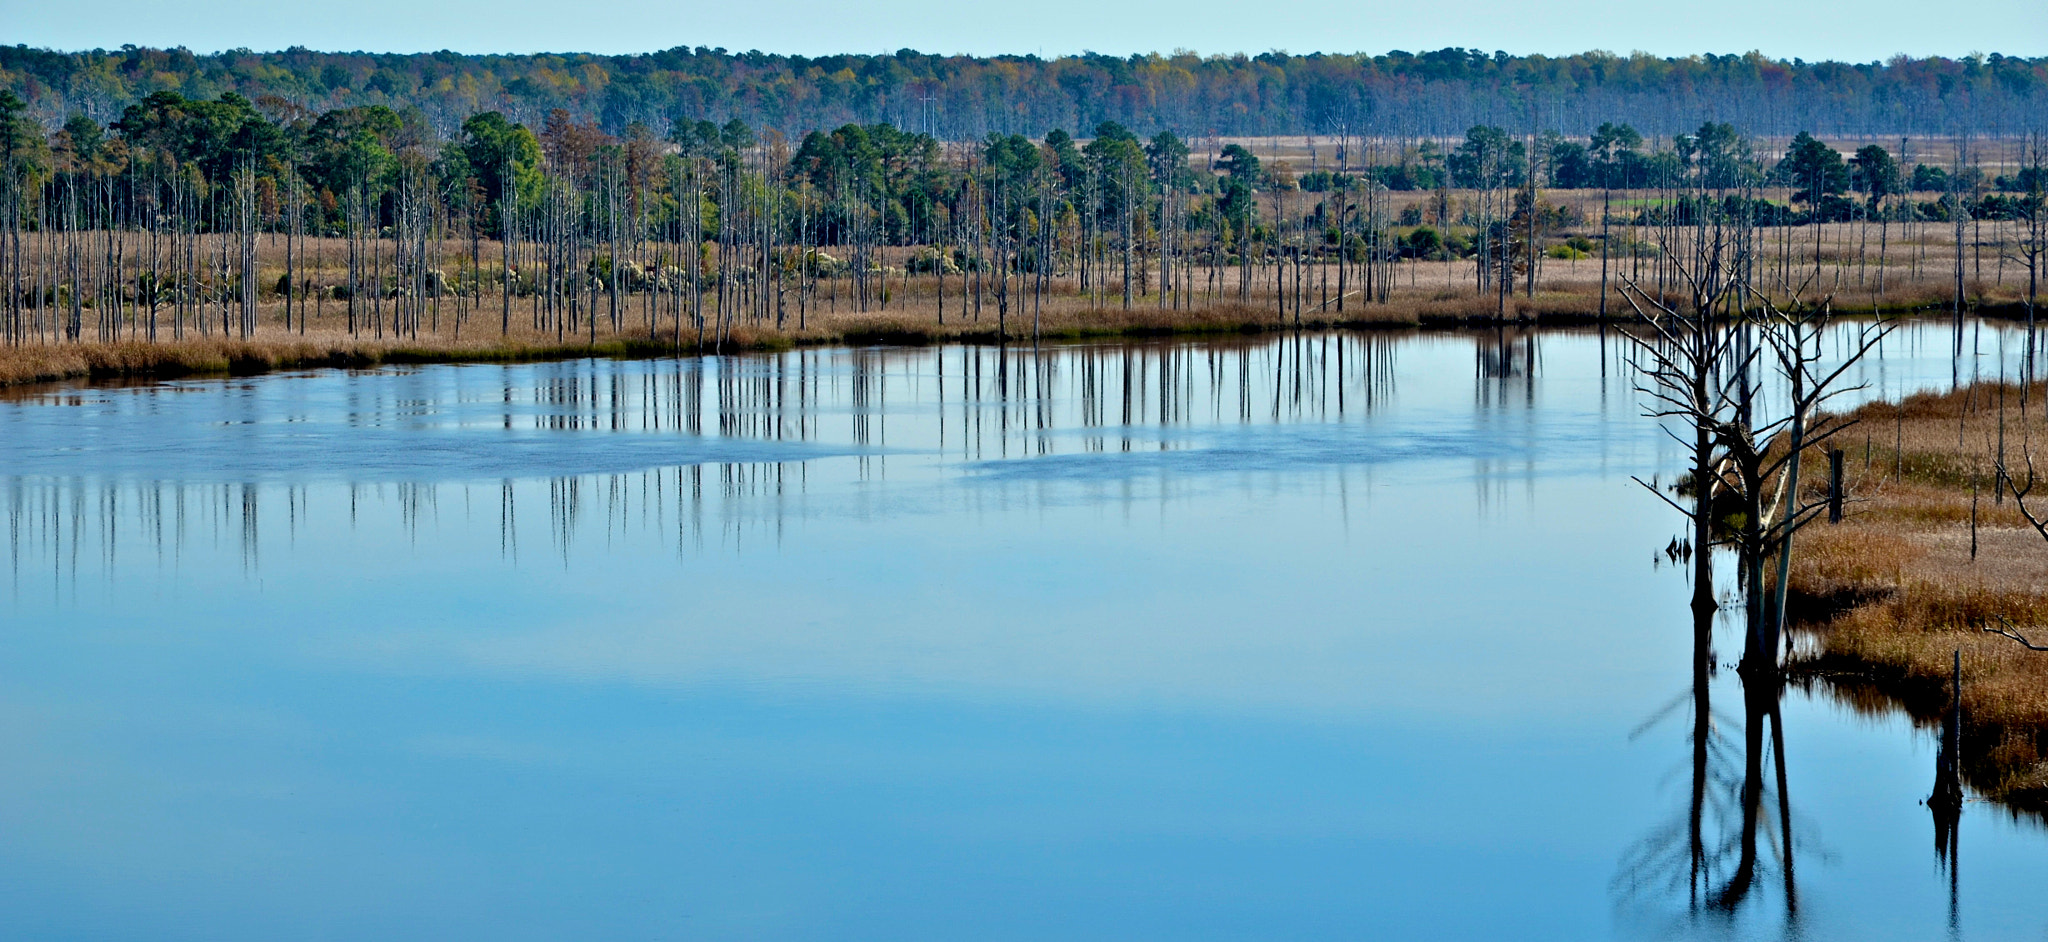 Photograph A Bend in the River by Mike Melnotte on 500px